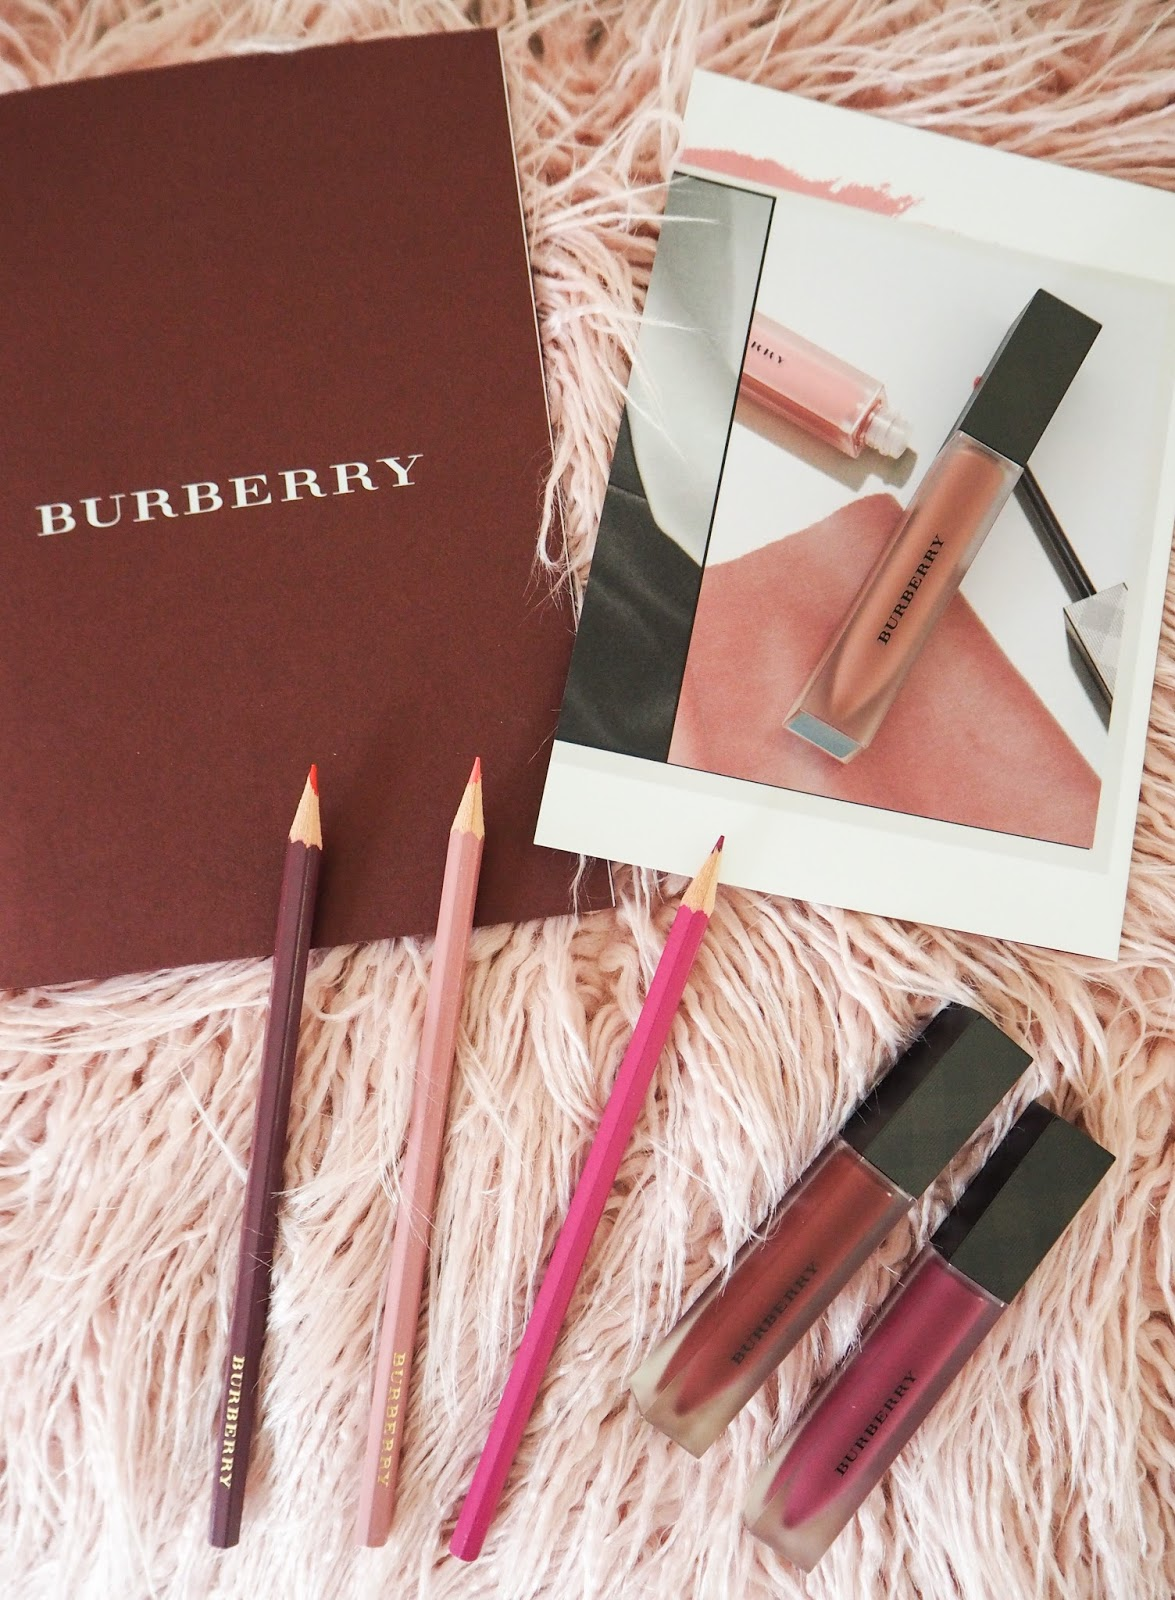 Burberry Lip Velvet Liquid Lipstick in the shades, Fawn, Bright Plum and Oxblood